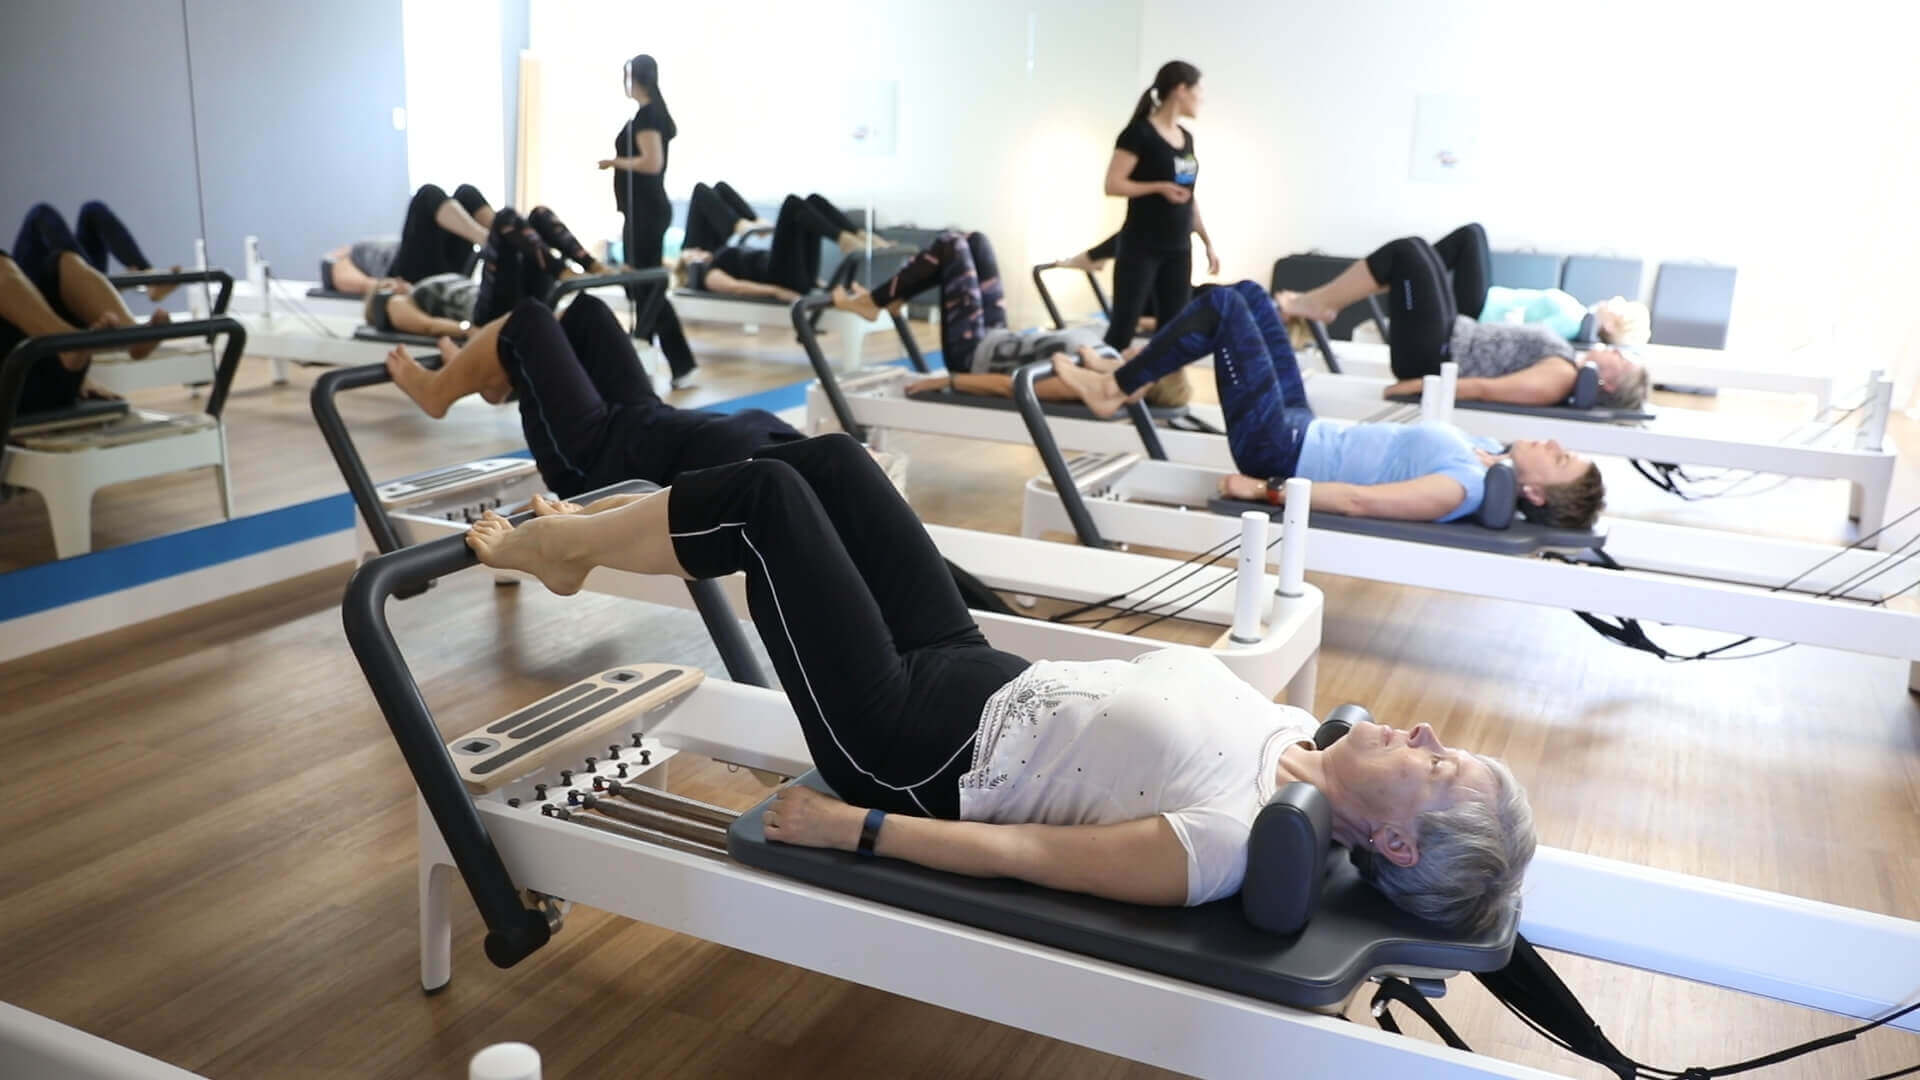 St Peters Contact Reformer